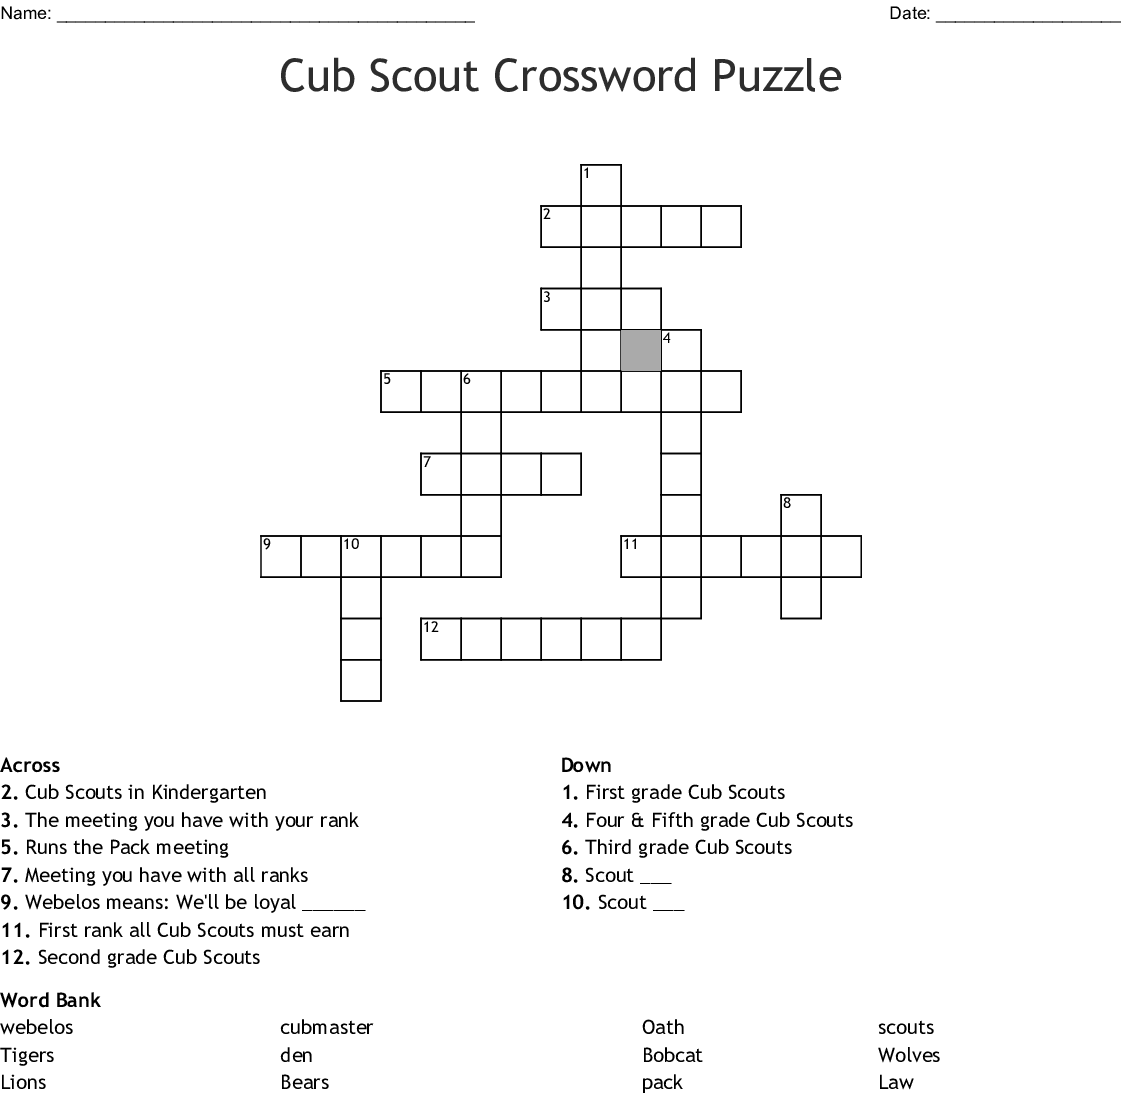 Youth Organizations Amp Resources Crosswords Word Searches